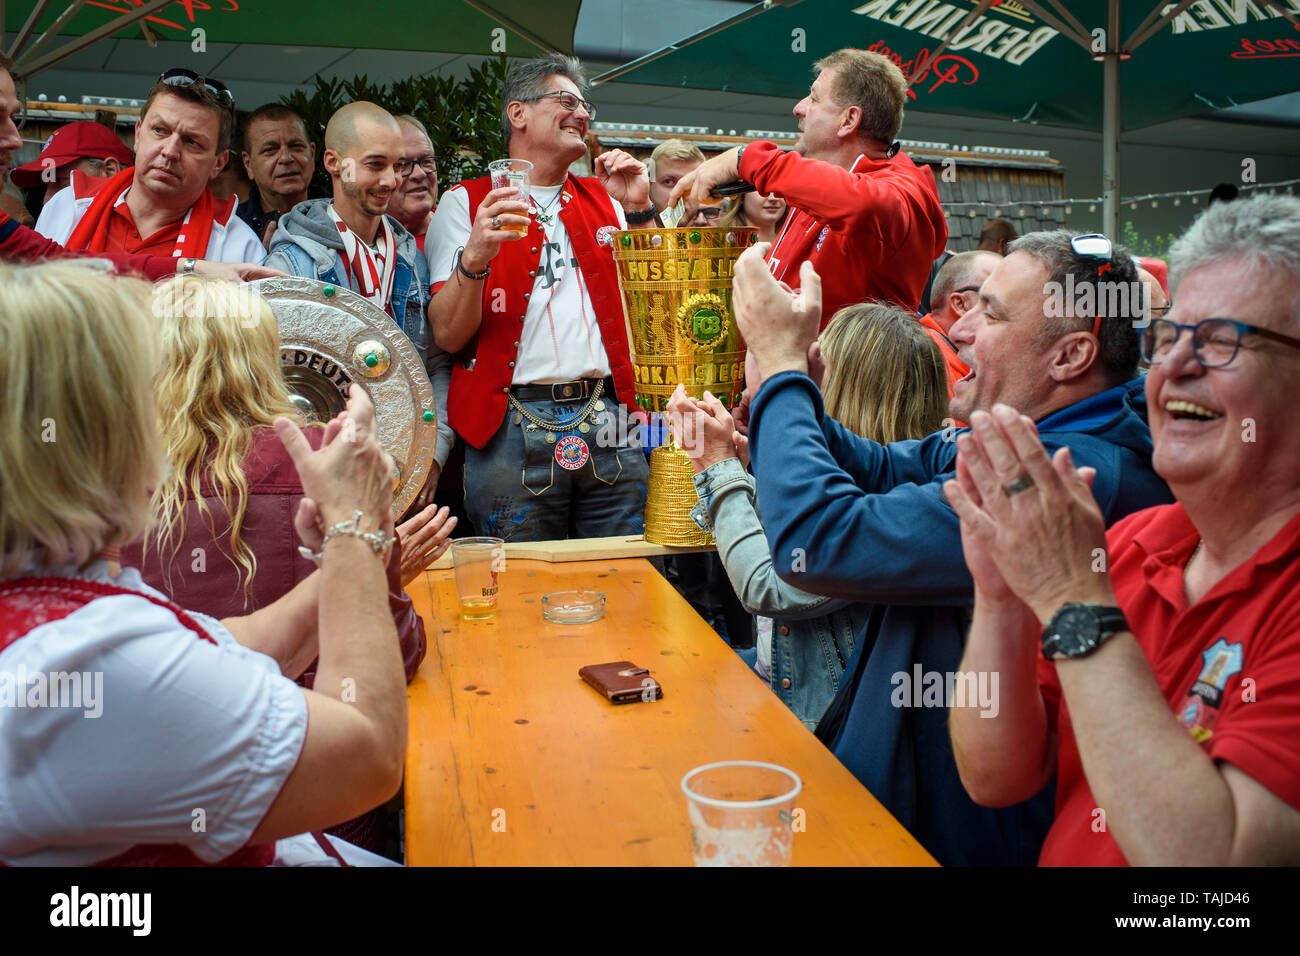 Berlin, Germany. 25th May, 2019. Football, DFB Cup Final RB Leipzig - FC Bayern Munich. The fans of Bayern Munich meet before the game with homemade dummies of the championship cup and the DFB cup in a beer garden on Alexanderplatz. Credit: Gregor Fischer/dpa/Alamy Live News - Stock Image